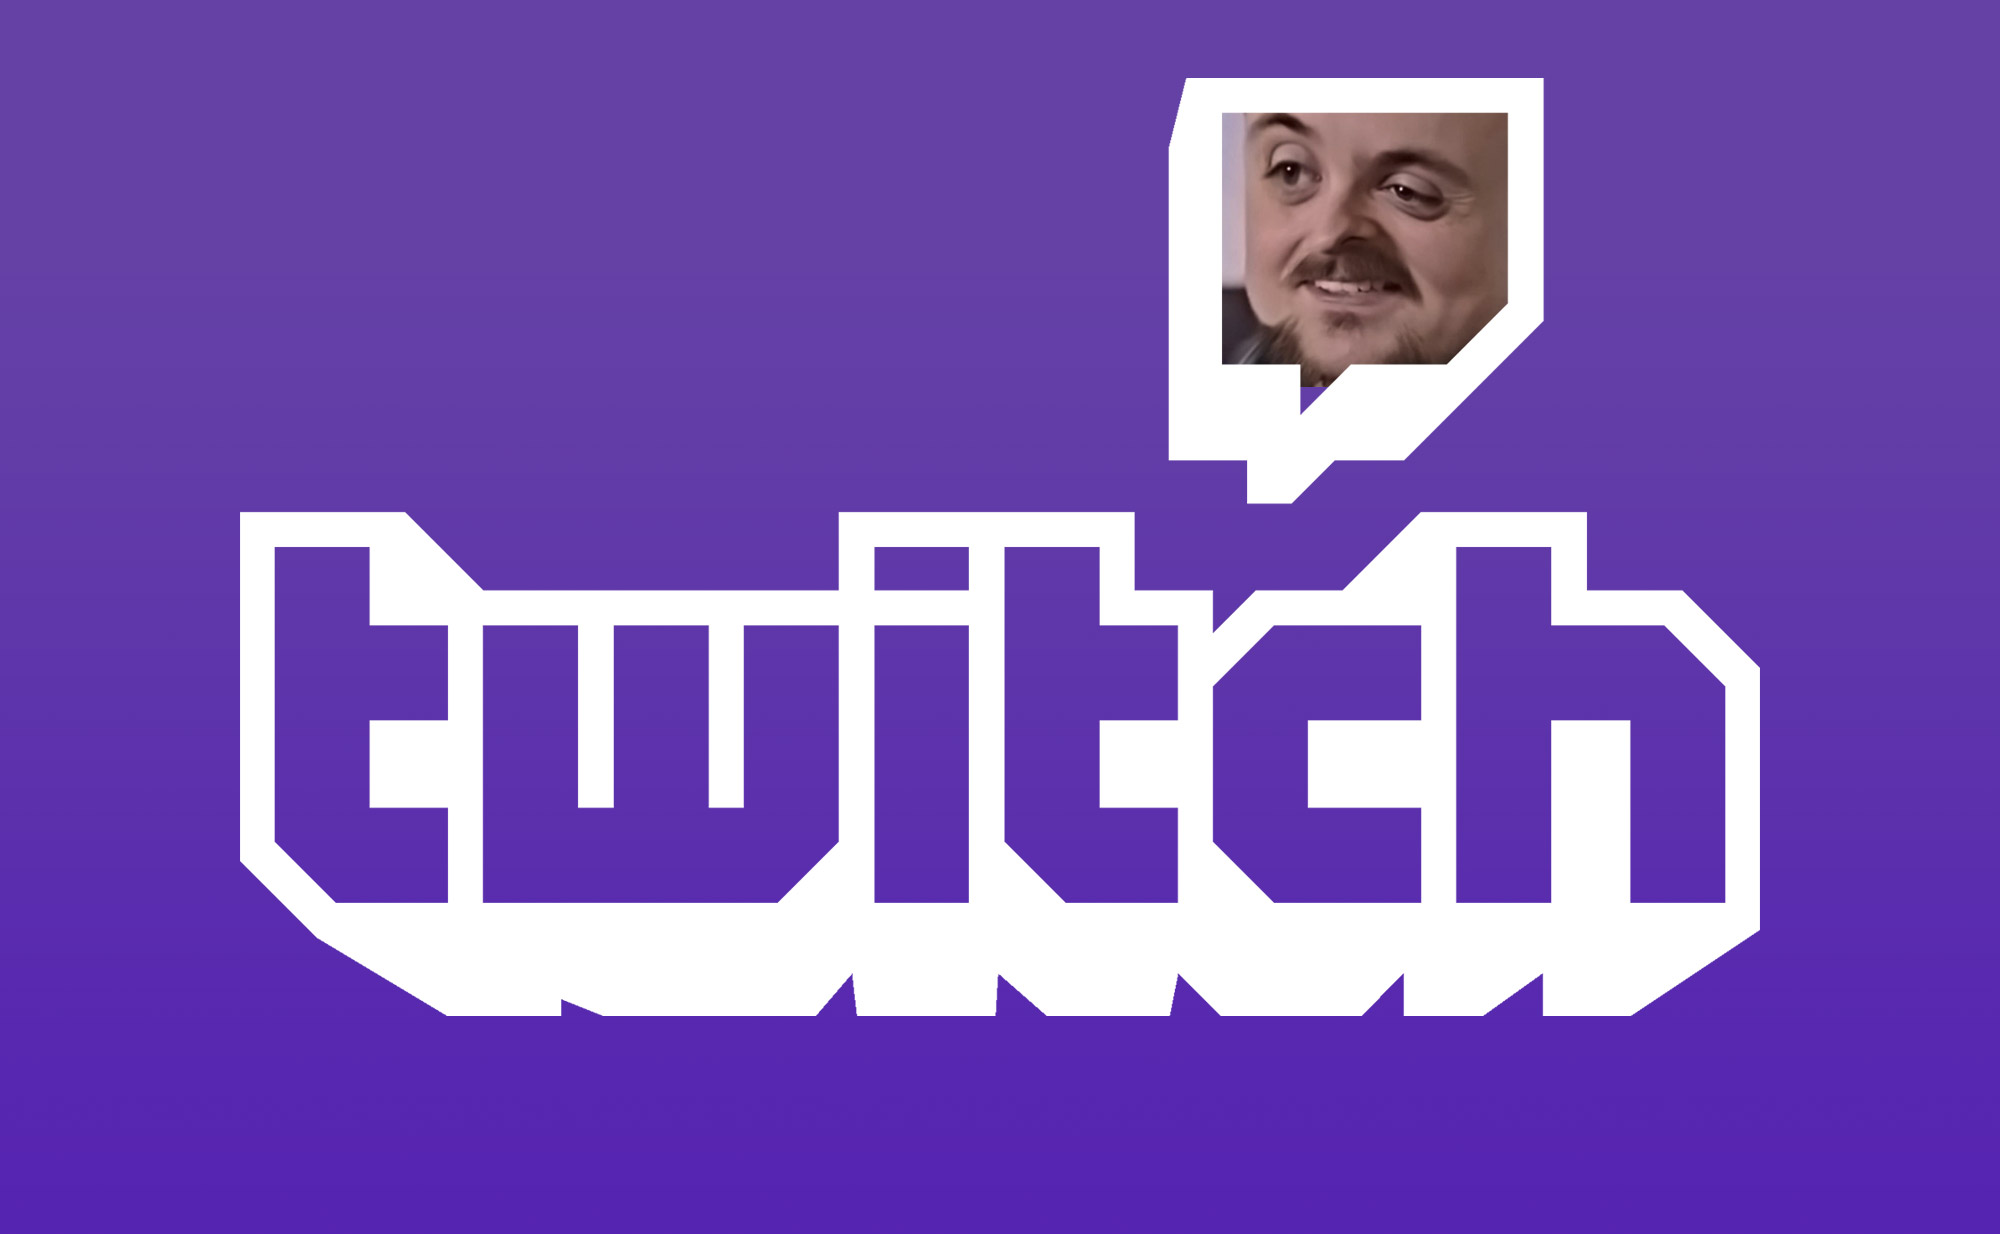 How Twitch's most popular emote, forsenE, took over - Polygon